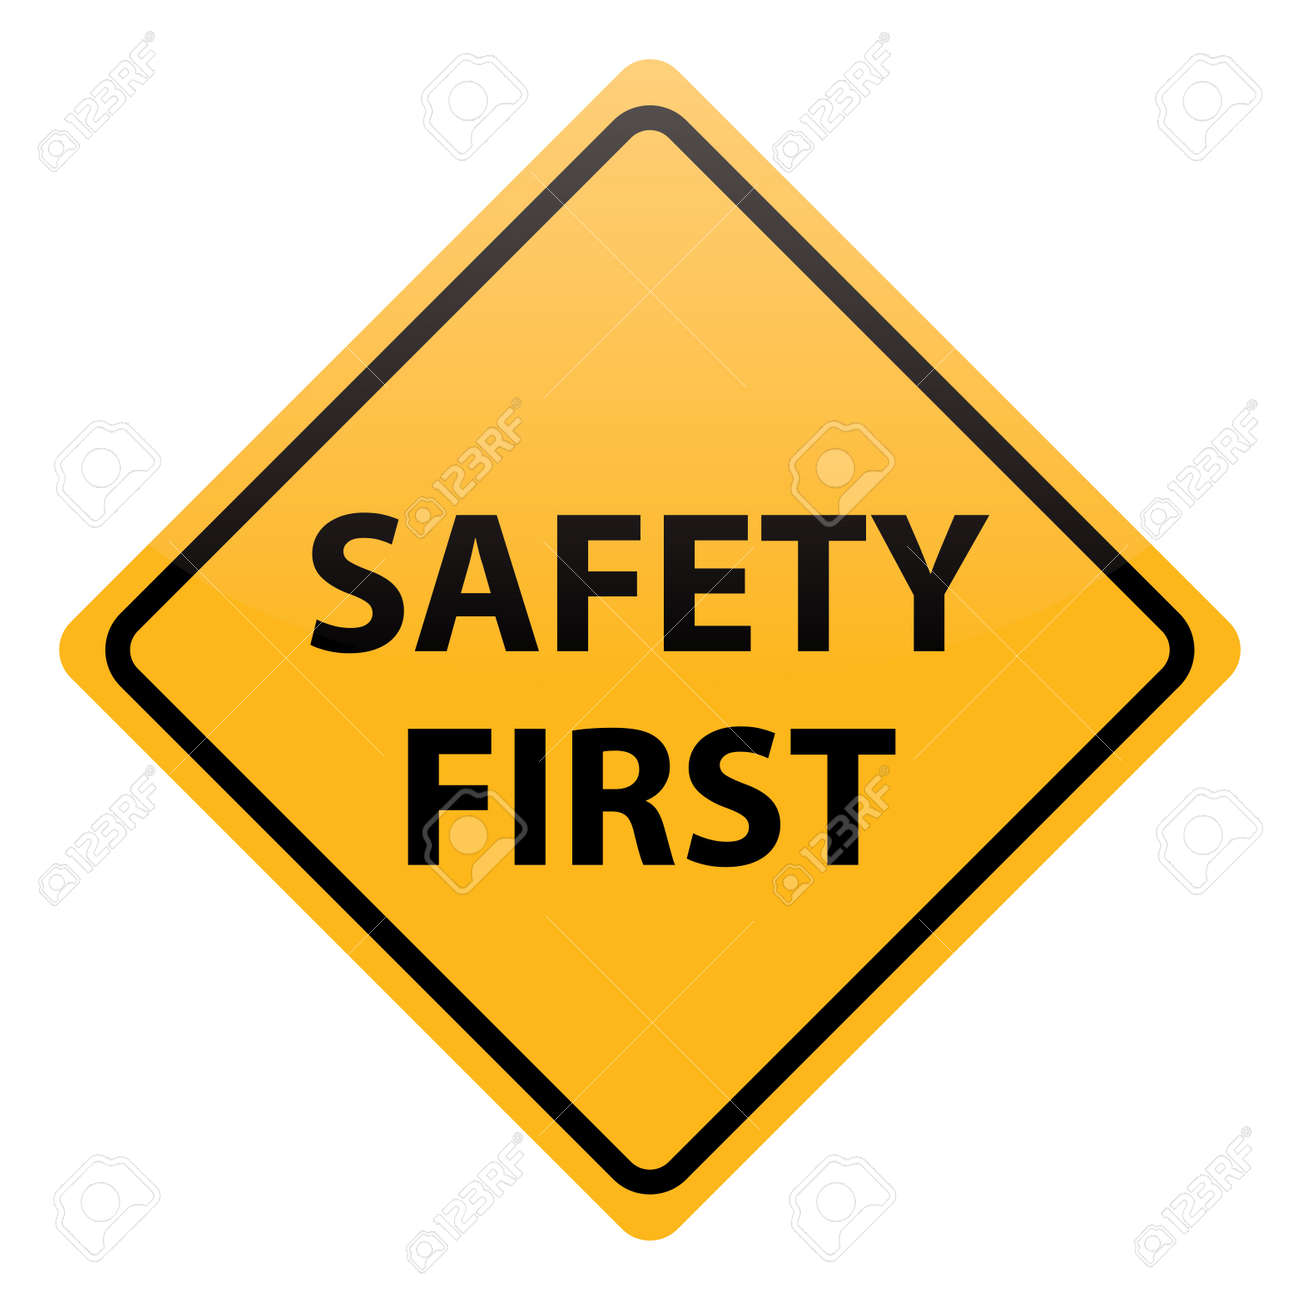 vector safety first Stock Vector - 20405255